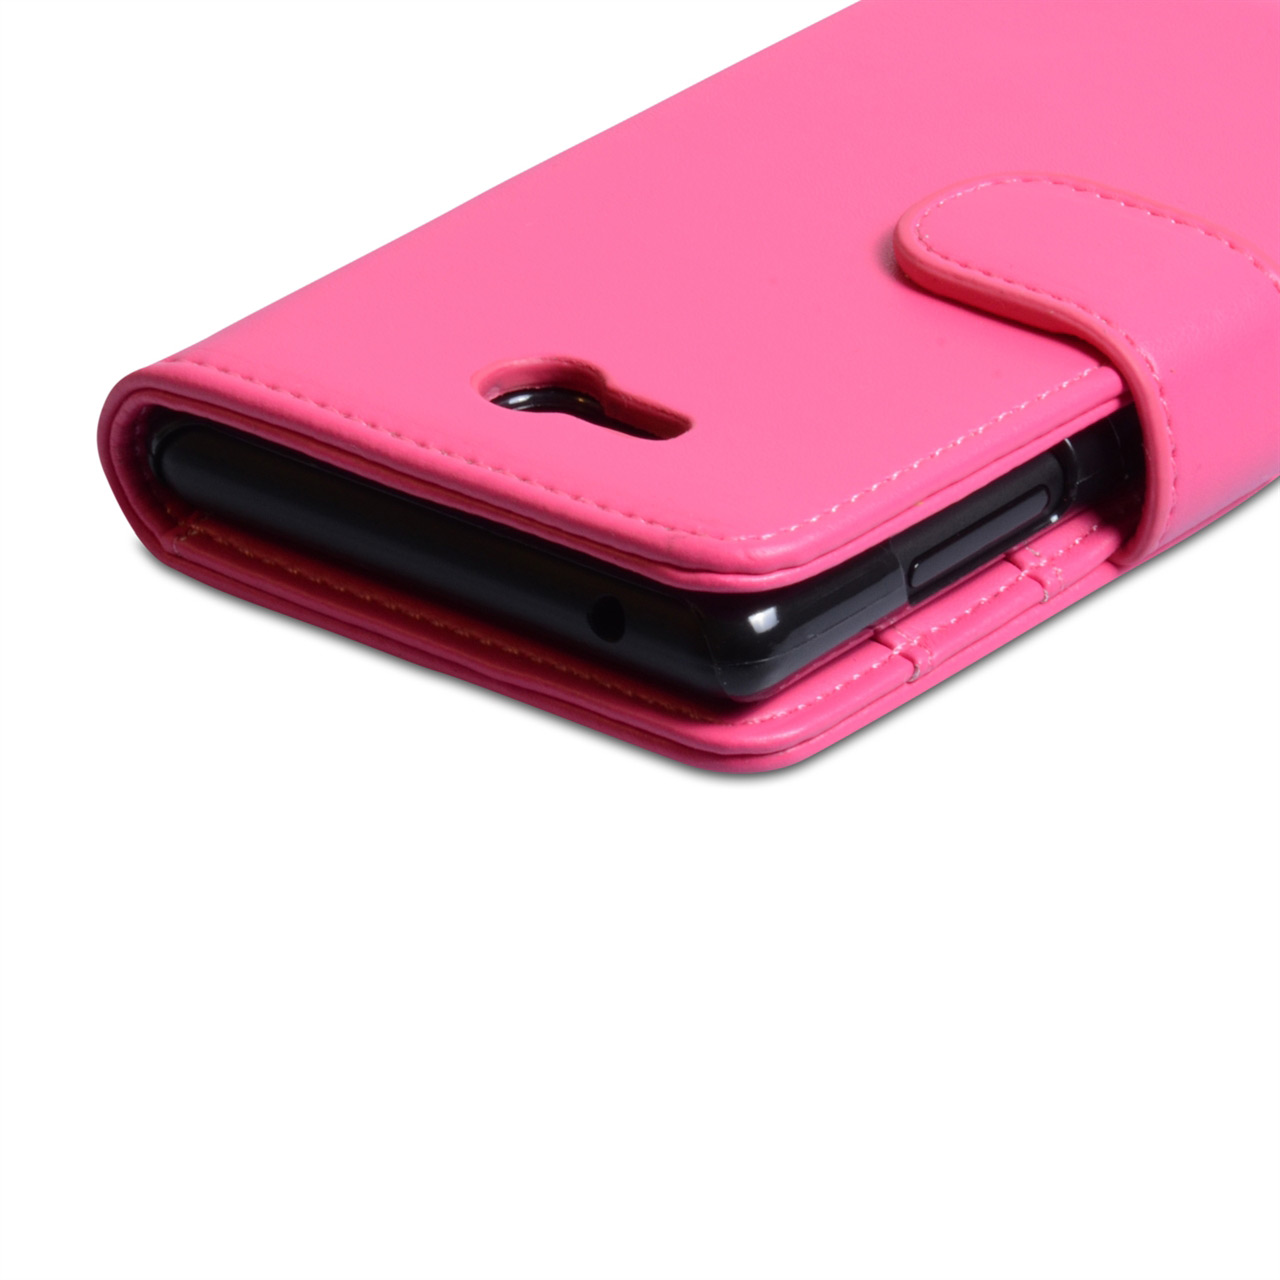 YouSave Nokia Lumia 820 Leather Effect Wallet Case - Hot Pink